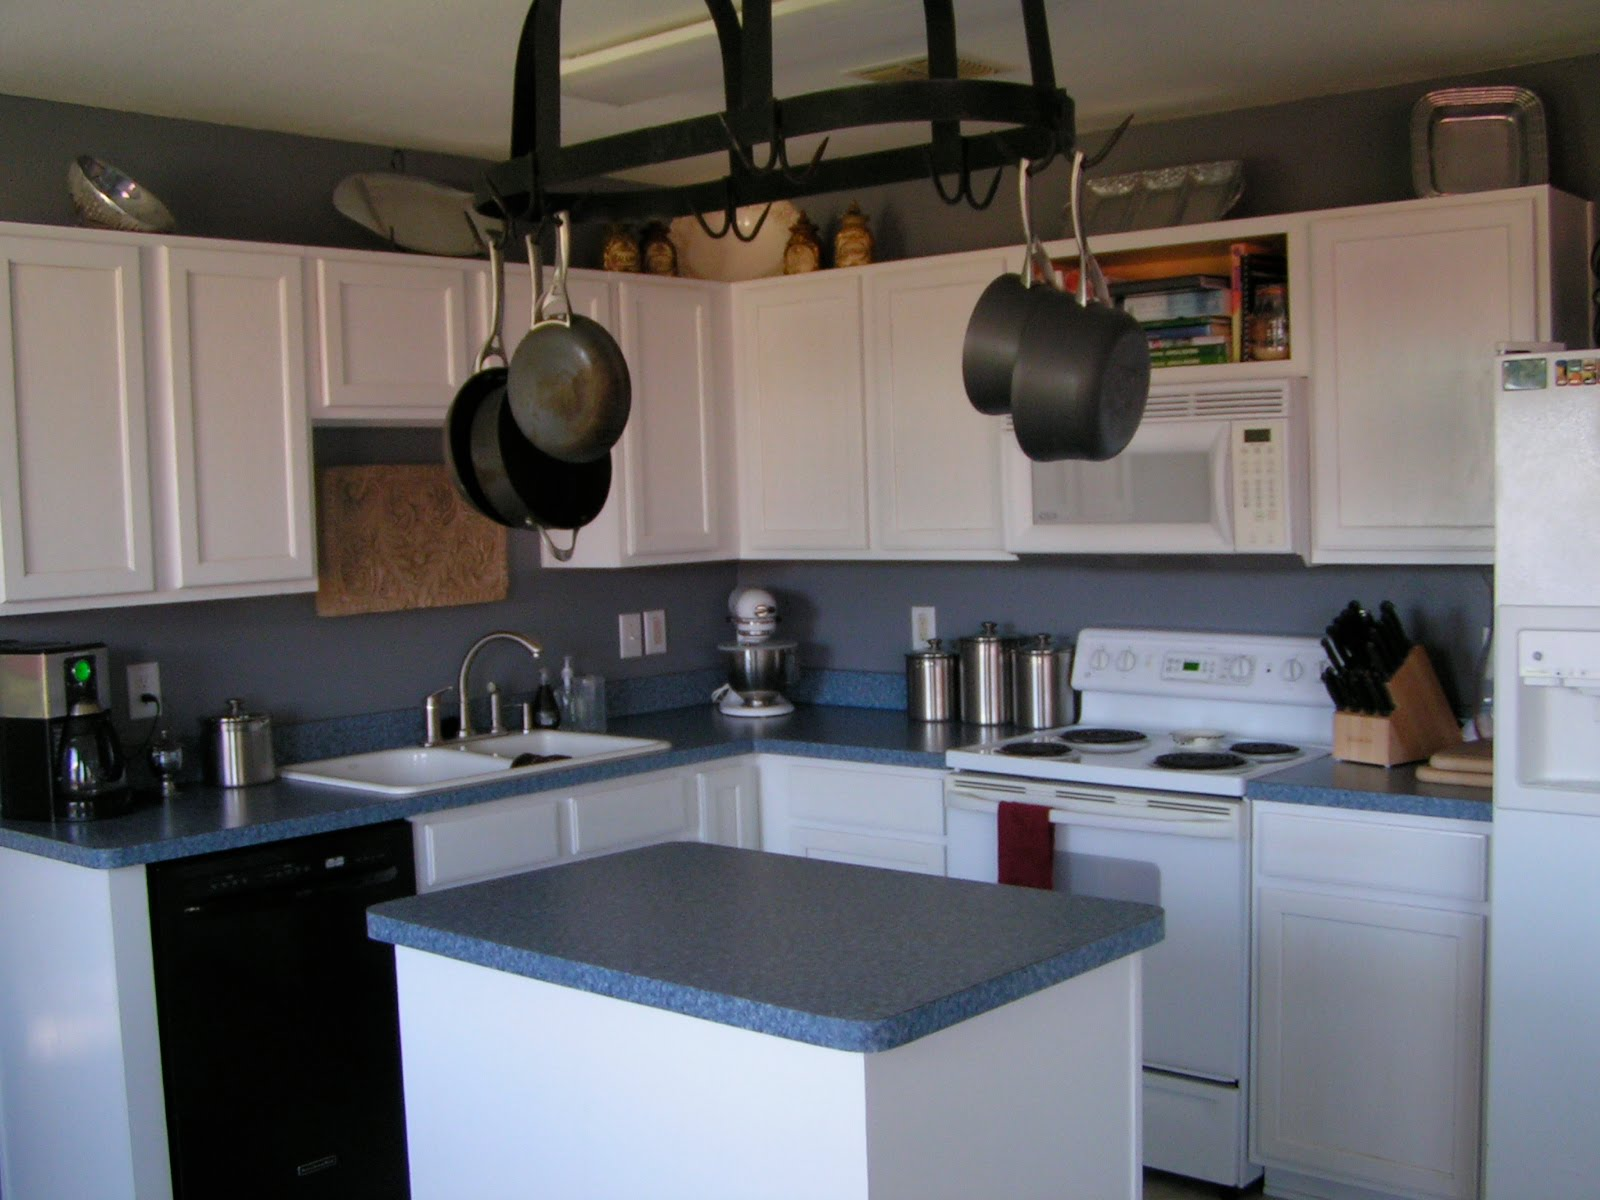 Remodelaholic Updated Kitchen counter tops back splash and